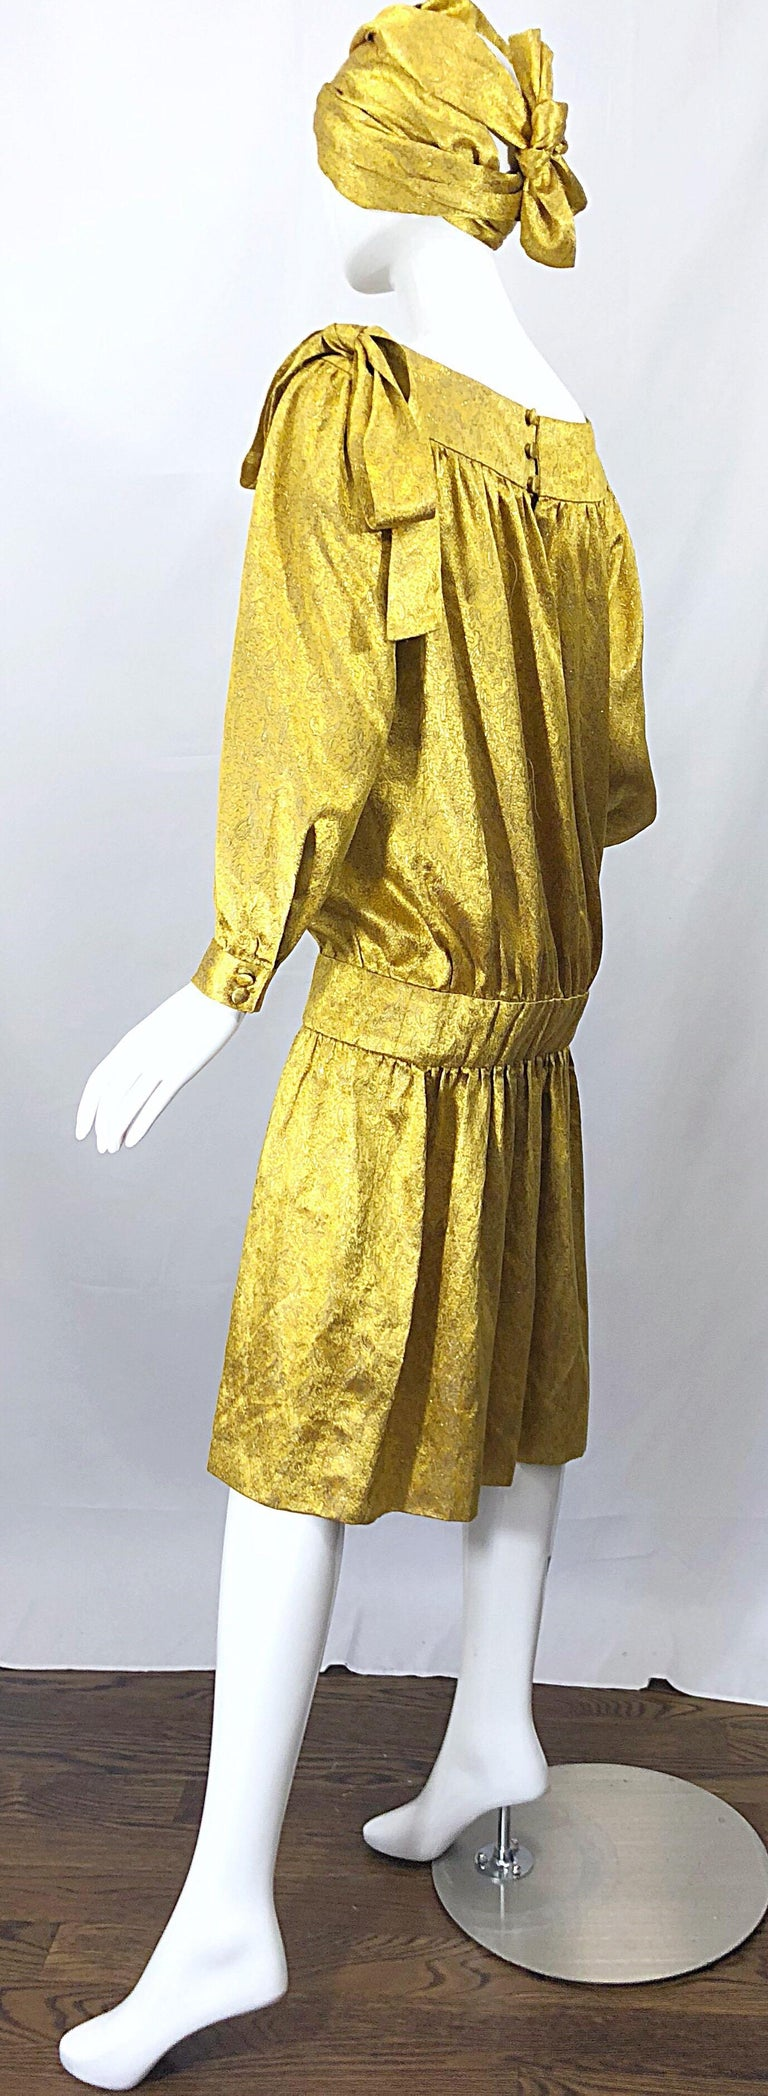 Vintage Brioni Yellow + Gold Silk 1920s Style Drop Waist Dress + Turban Sash For Sale 3